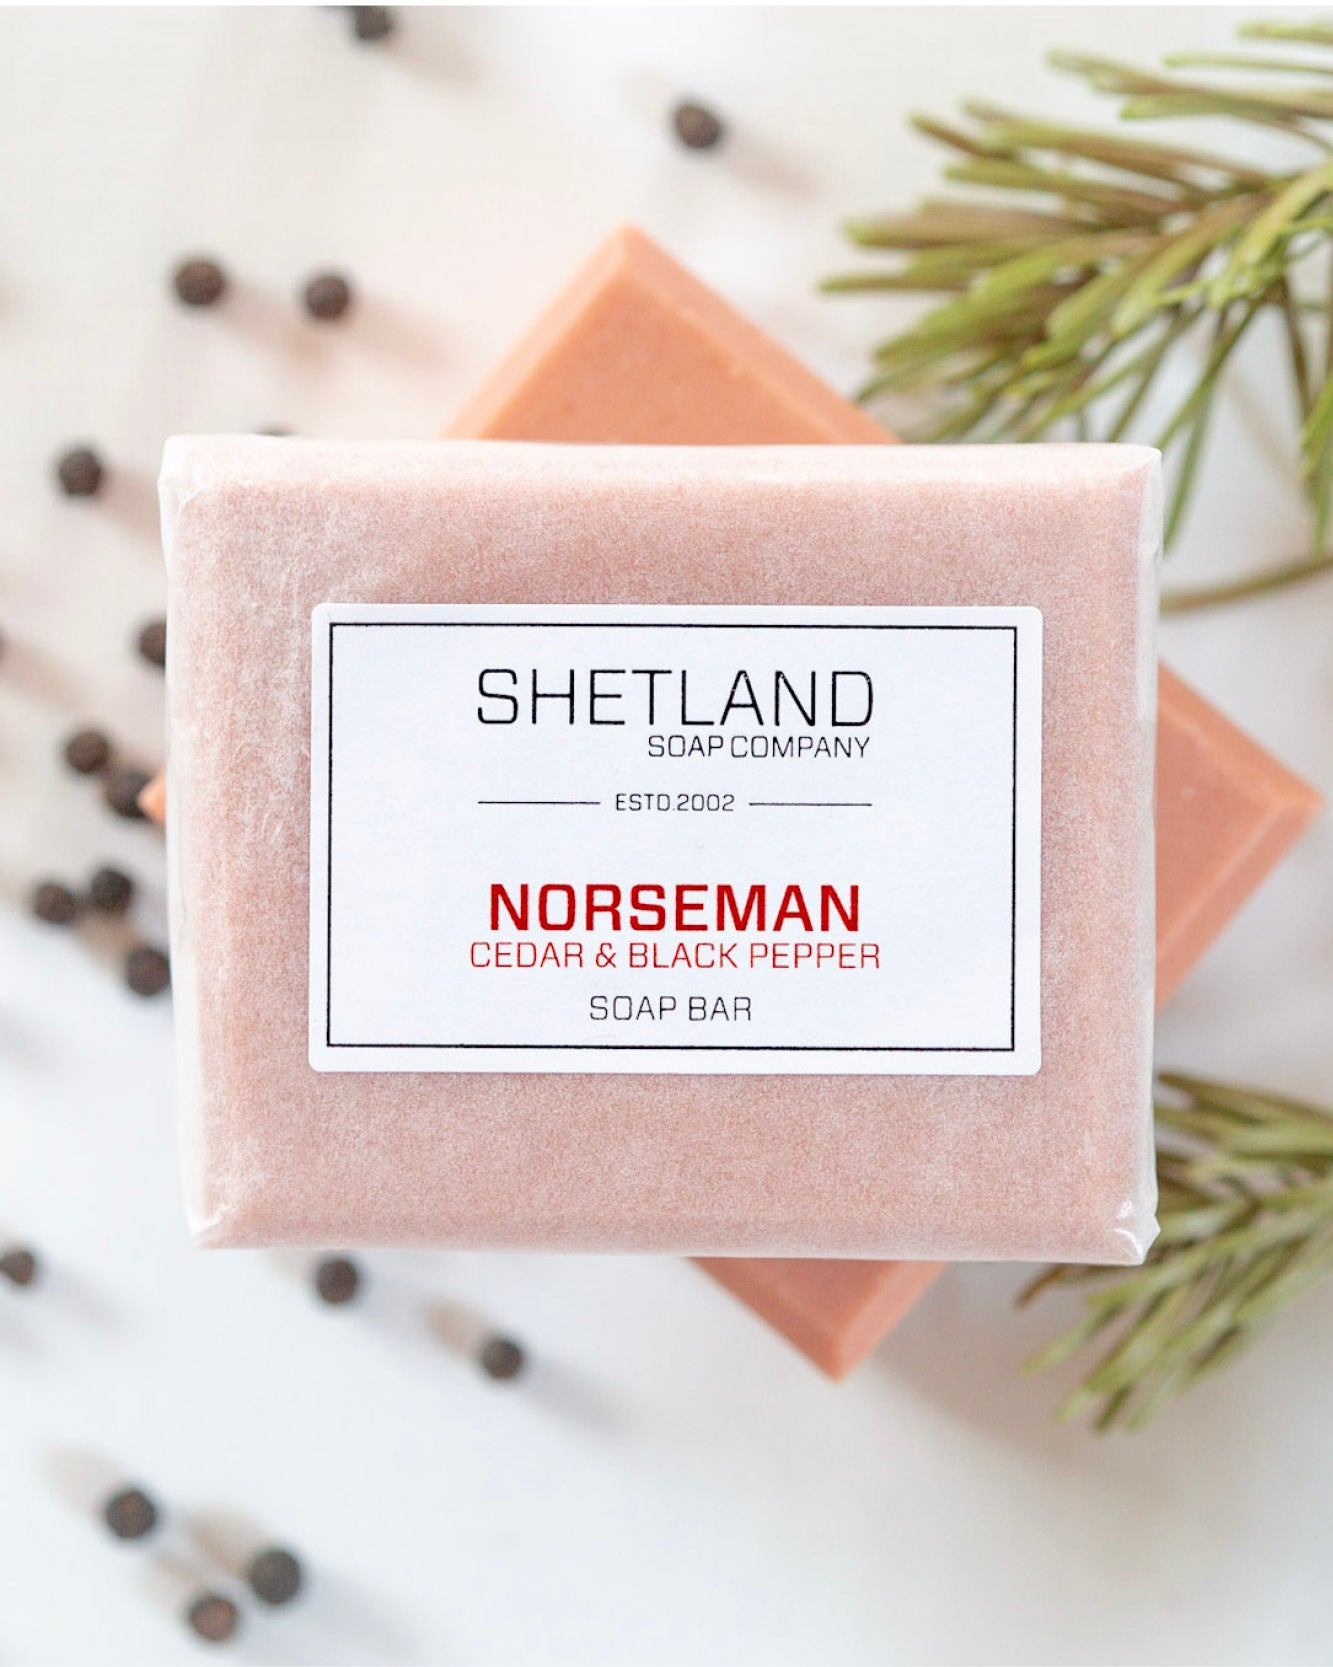 NORSEMAN SOAP BAR